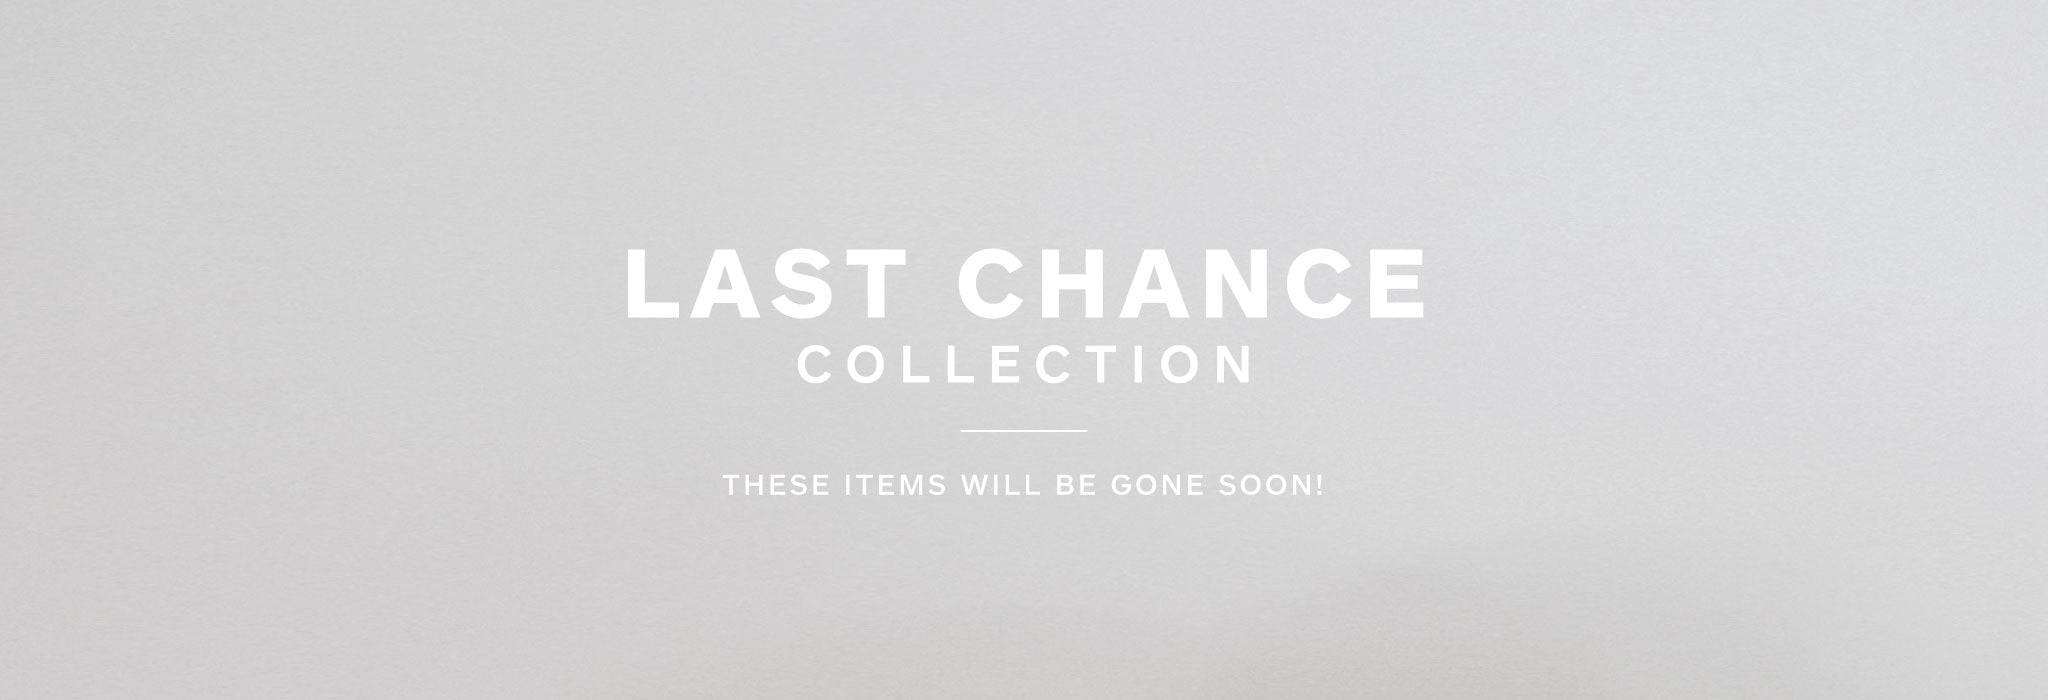 LAST CHANCE - Get these Sevenly shirts before they're gone!